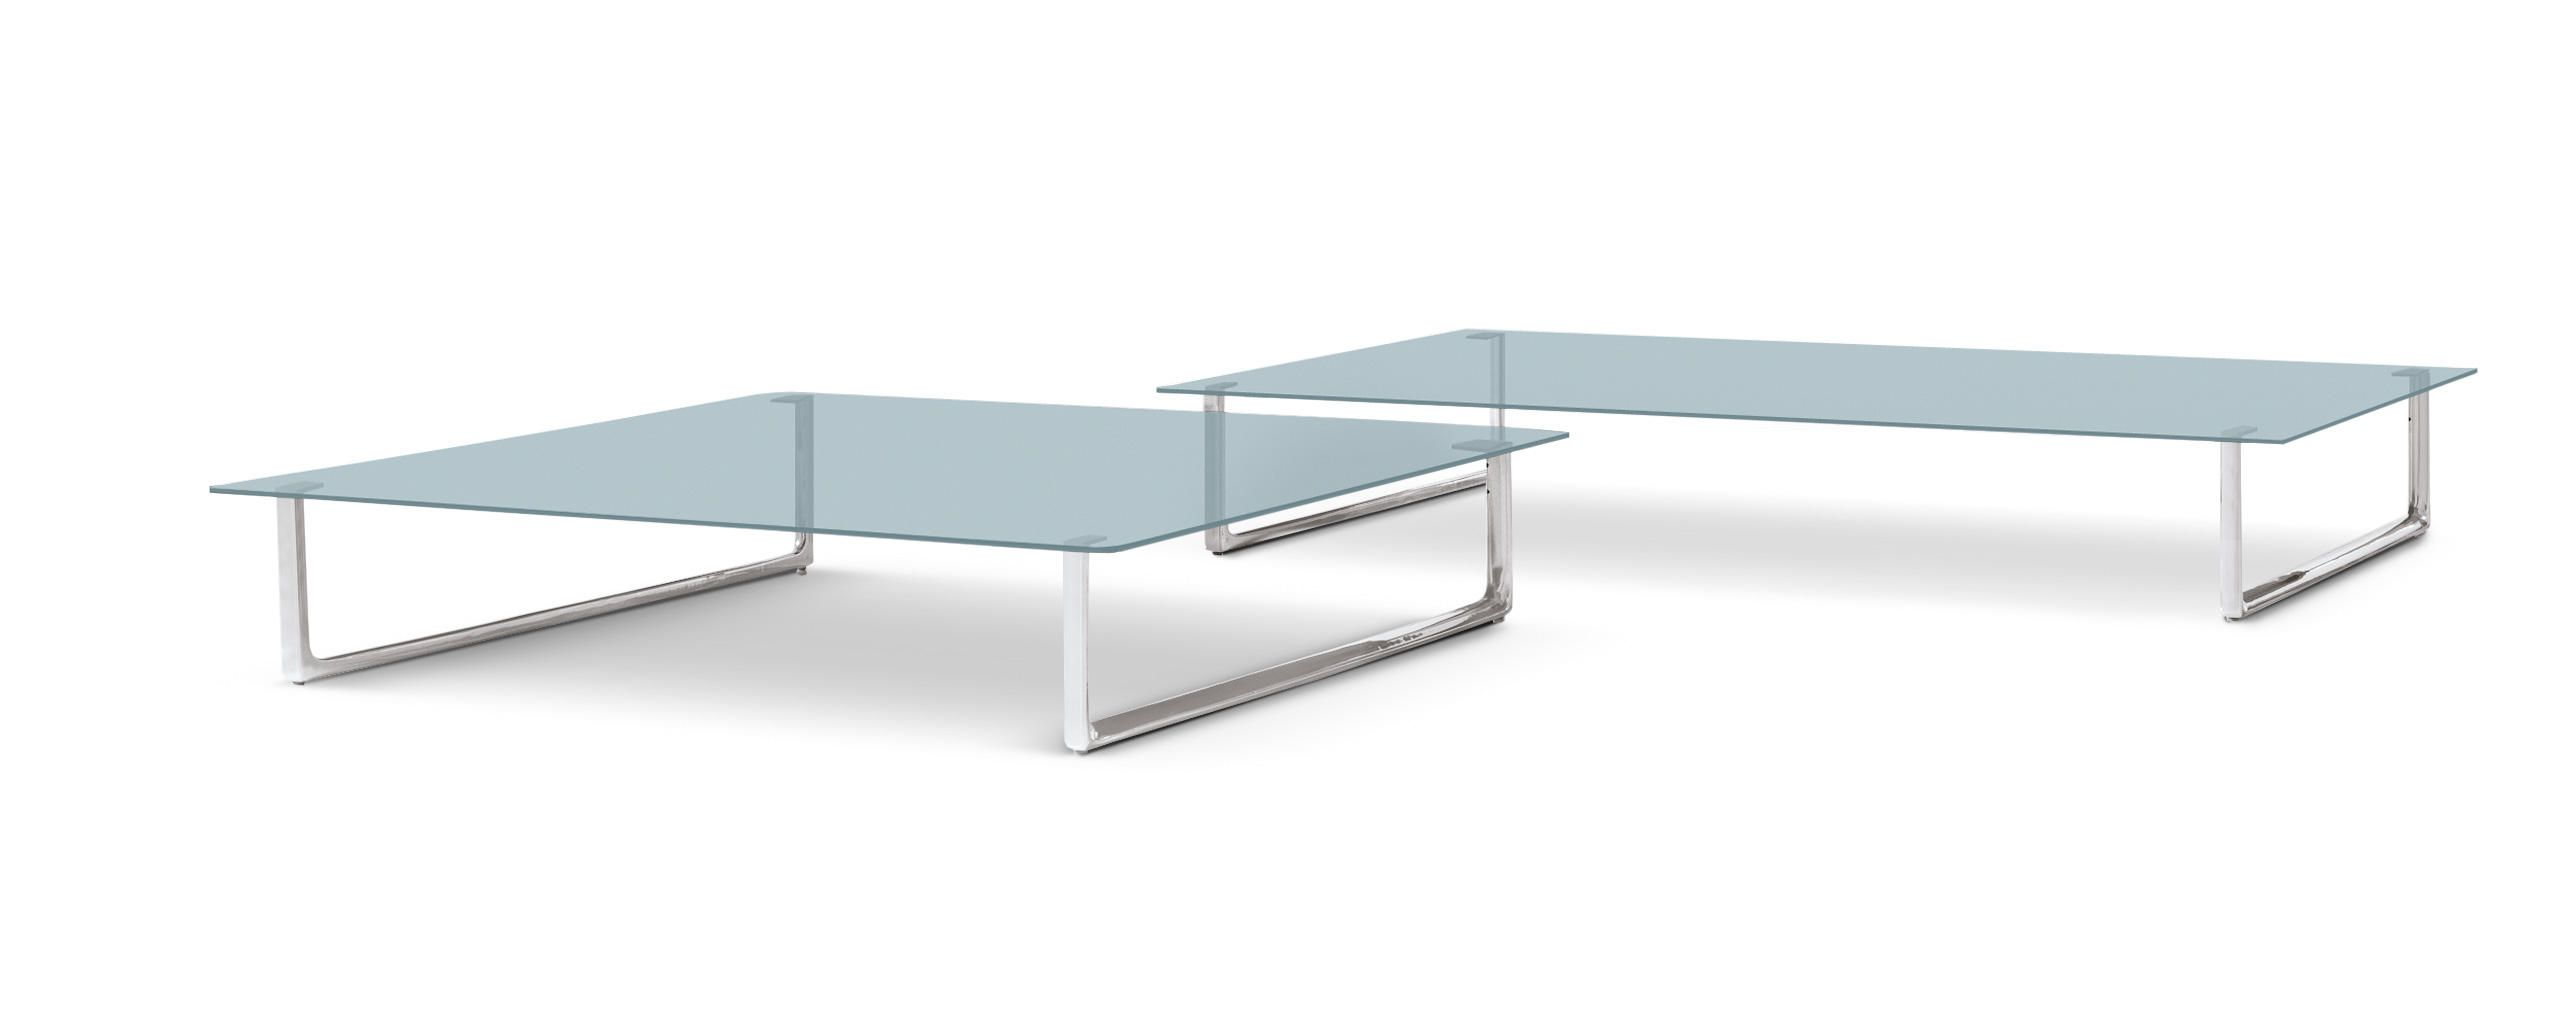 189 TOOT TABLE CASSINA G331 Pinterest